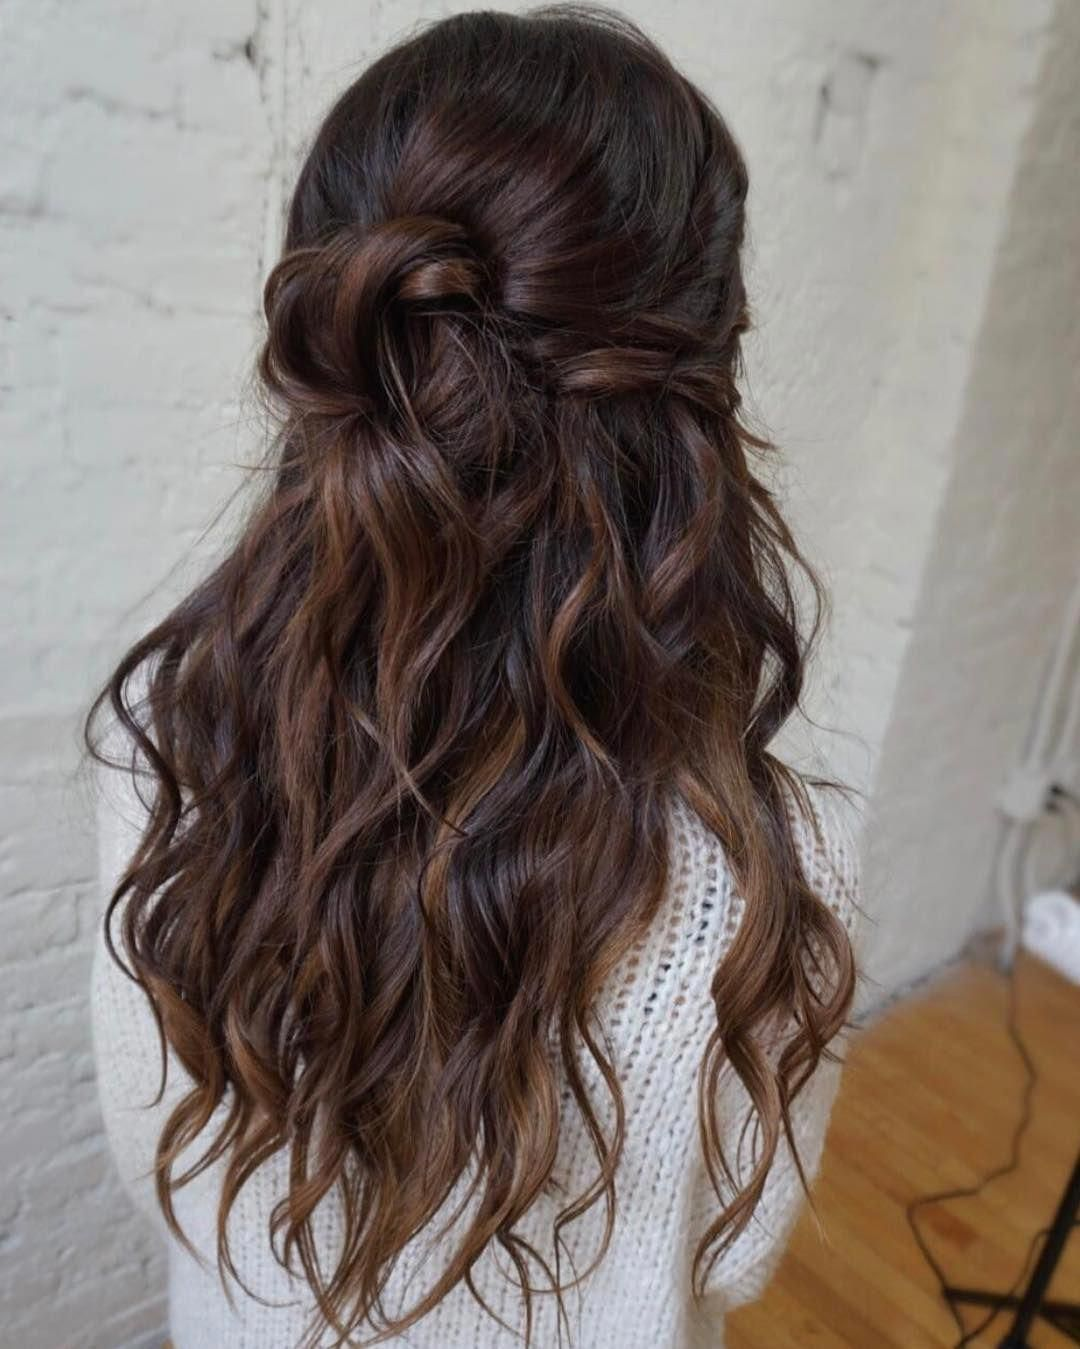 Boho Bridal Hairstyles For Carefree Bride: 79 Best Updo Hairstyles For Wedding Prom (With Images